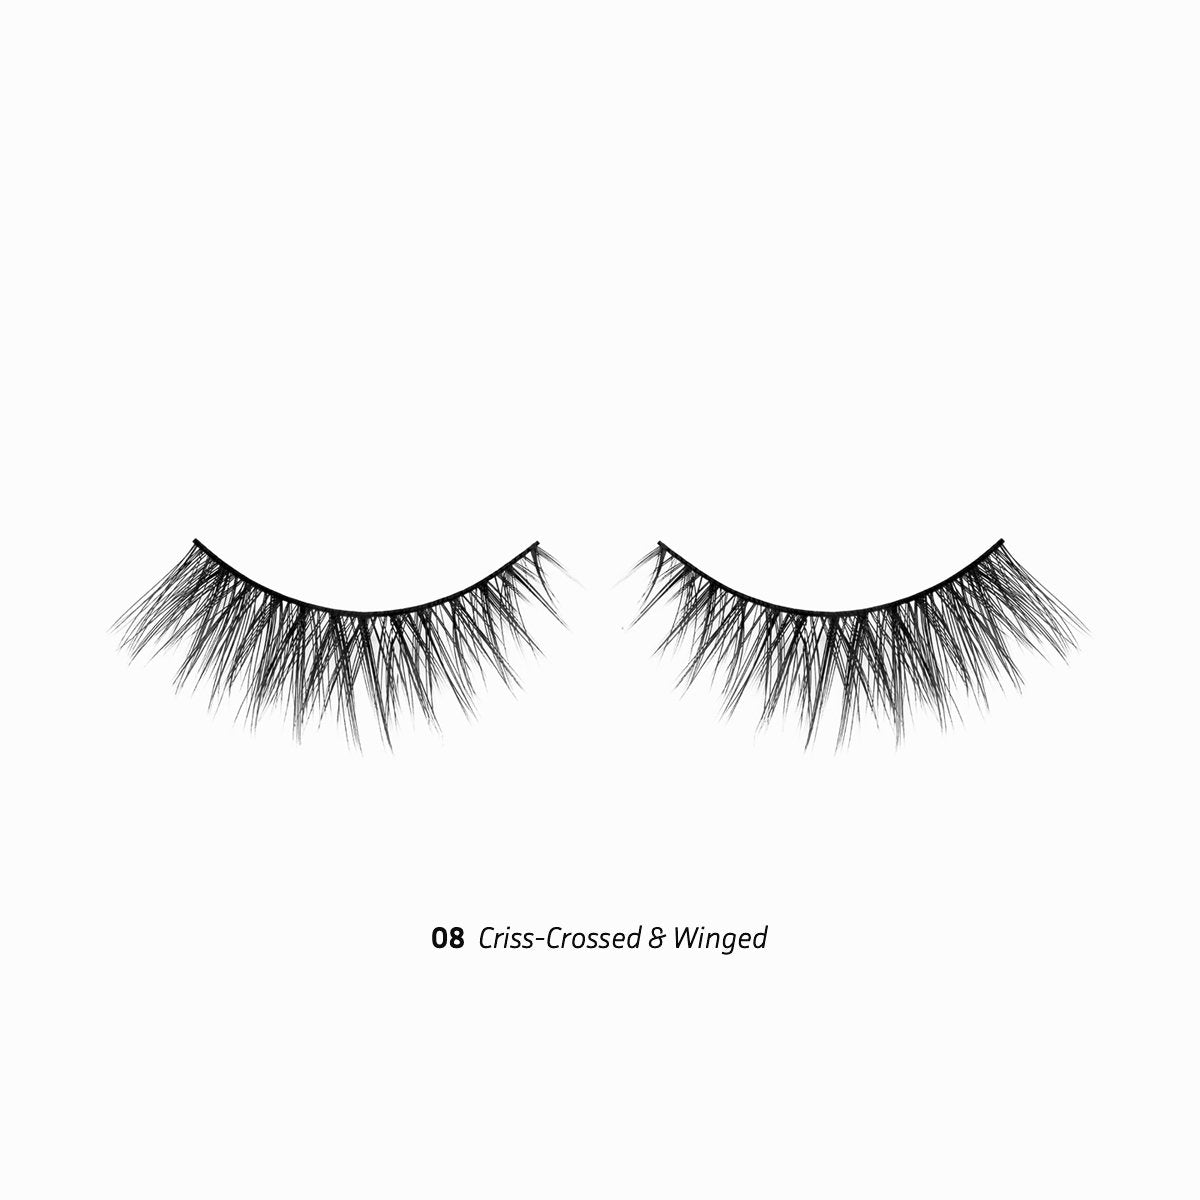 Lithe Lashes® | Full Volume Collection | Deals - Save Over 20% | Allure Best of Beauty Winner | False Lashes | Strip Lashes | Falsies | Faux Lashes